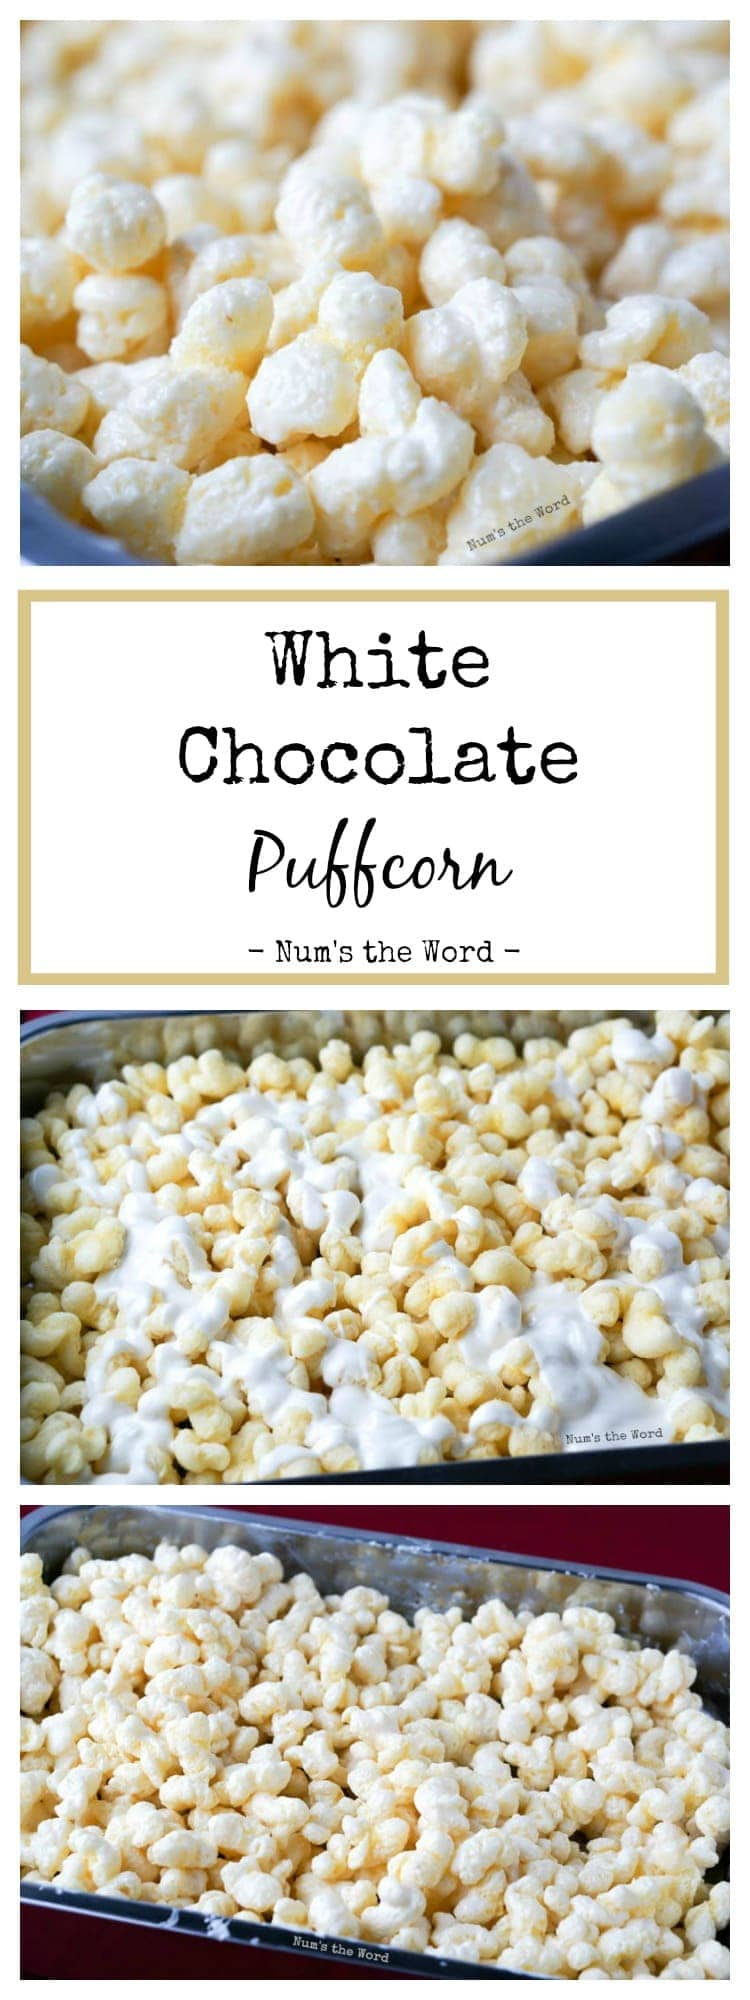 Christmas Popcorn Recipes.White Chocolate Puffcorn Num S The Word